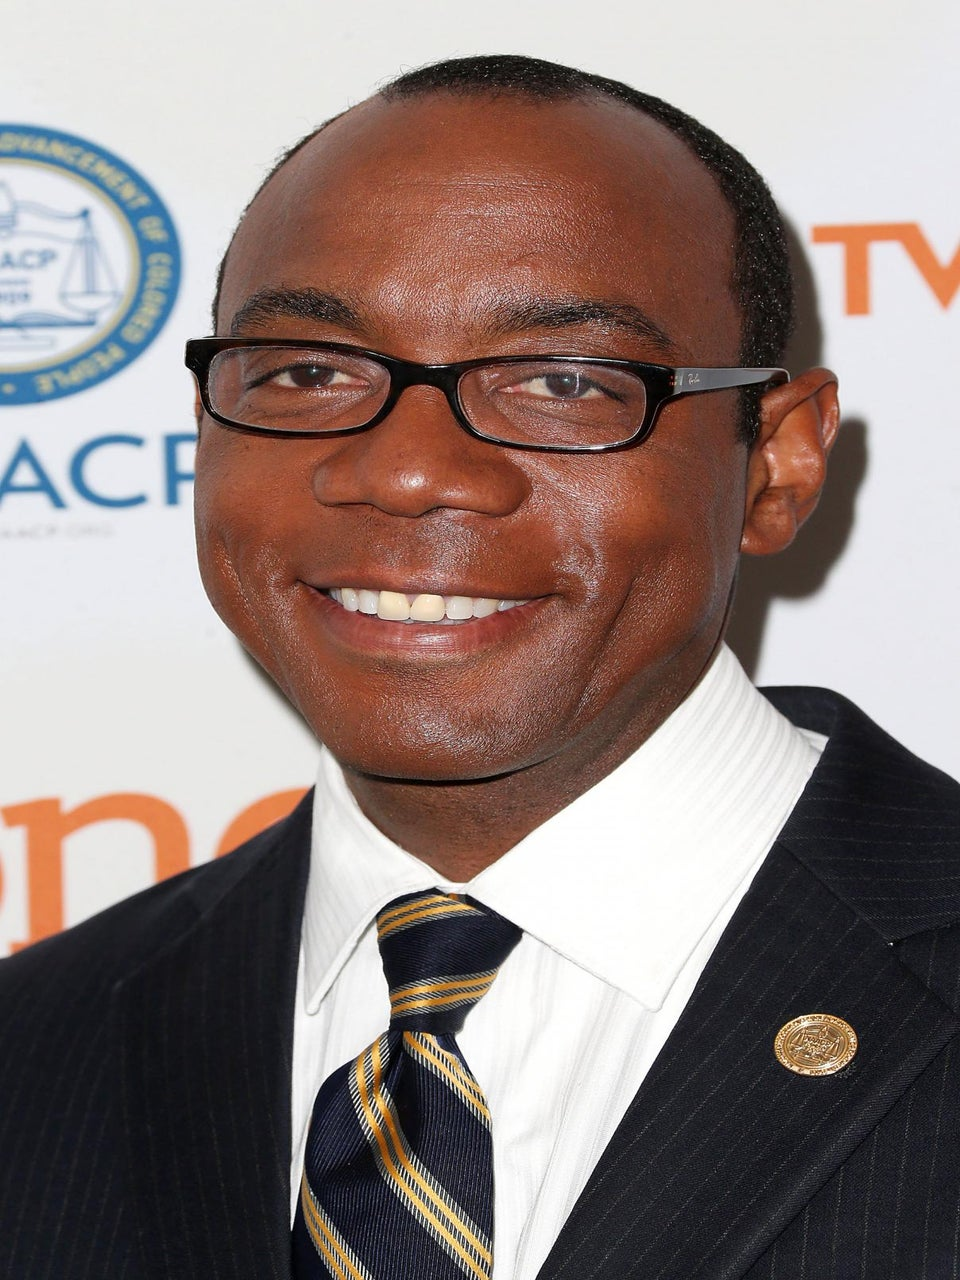 NAACP President Responds To Colorado Bombing: 'Our Work As Peacemakers Provokes Troublemakers'